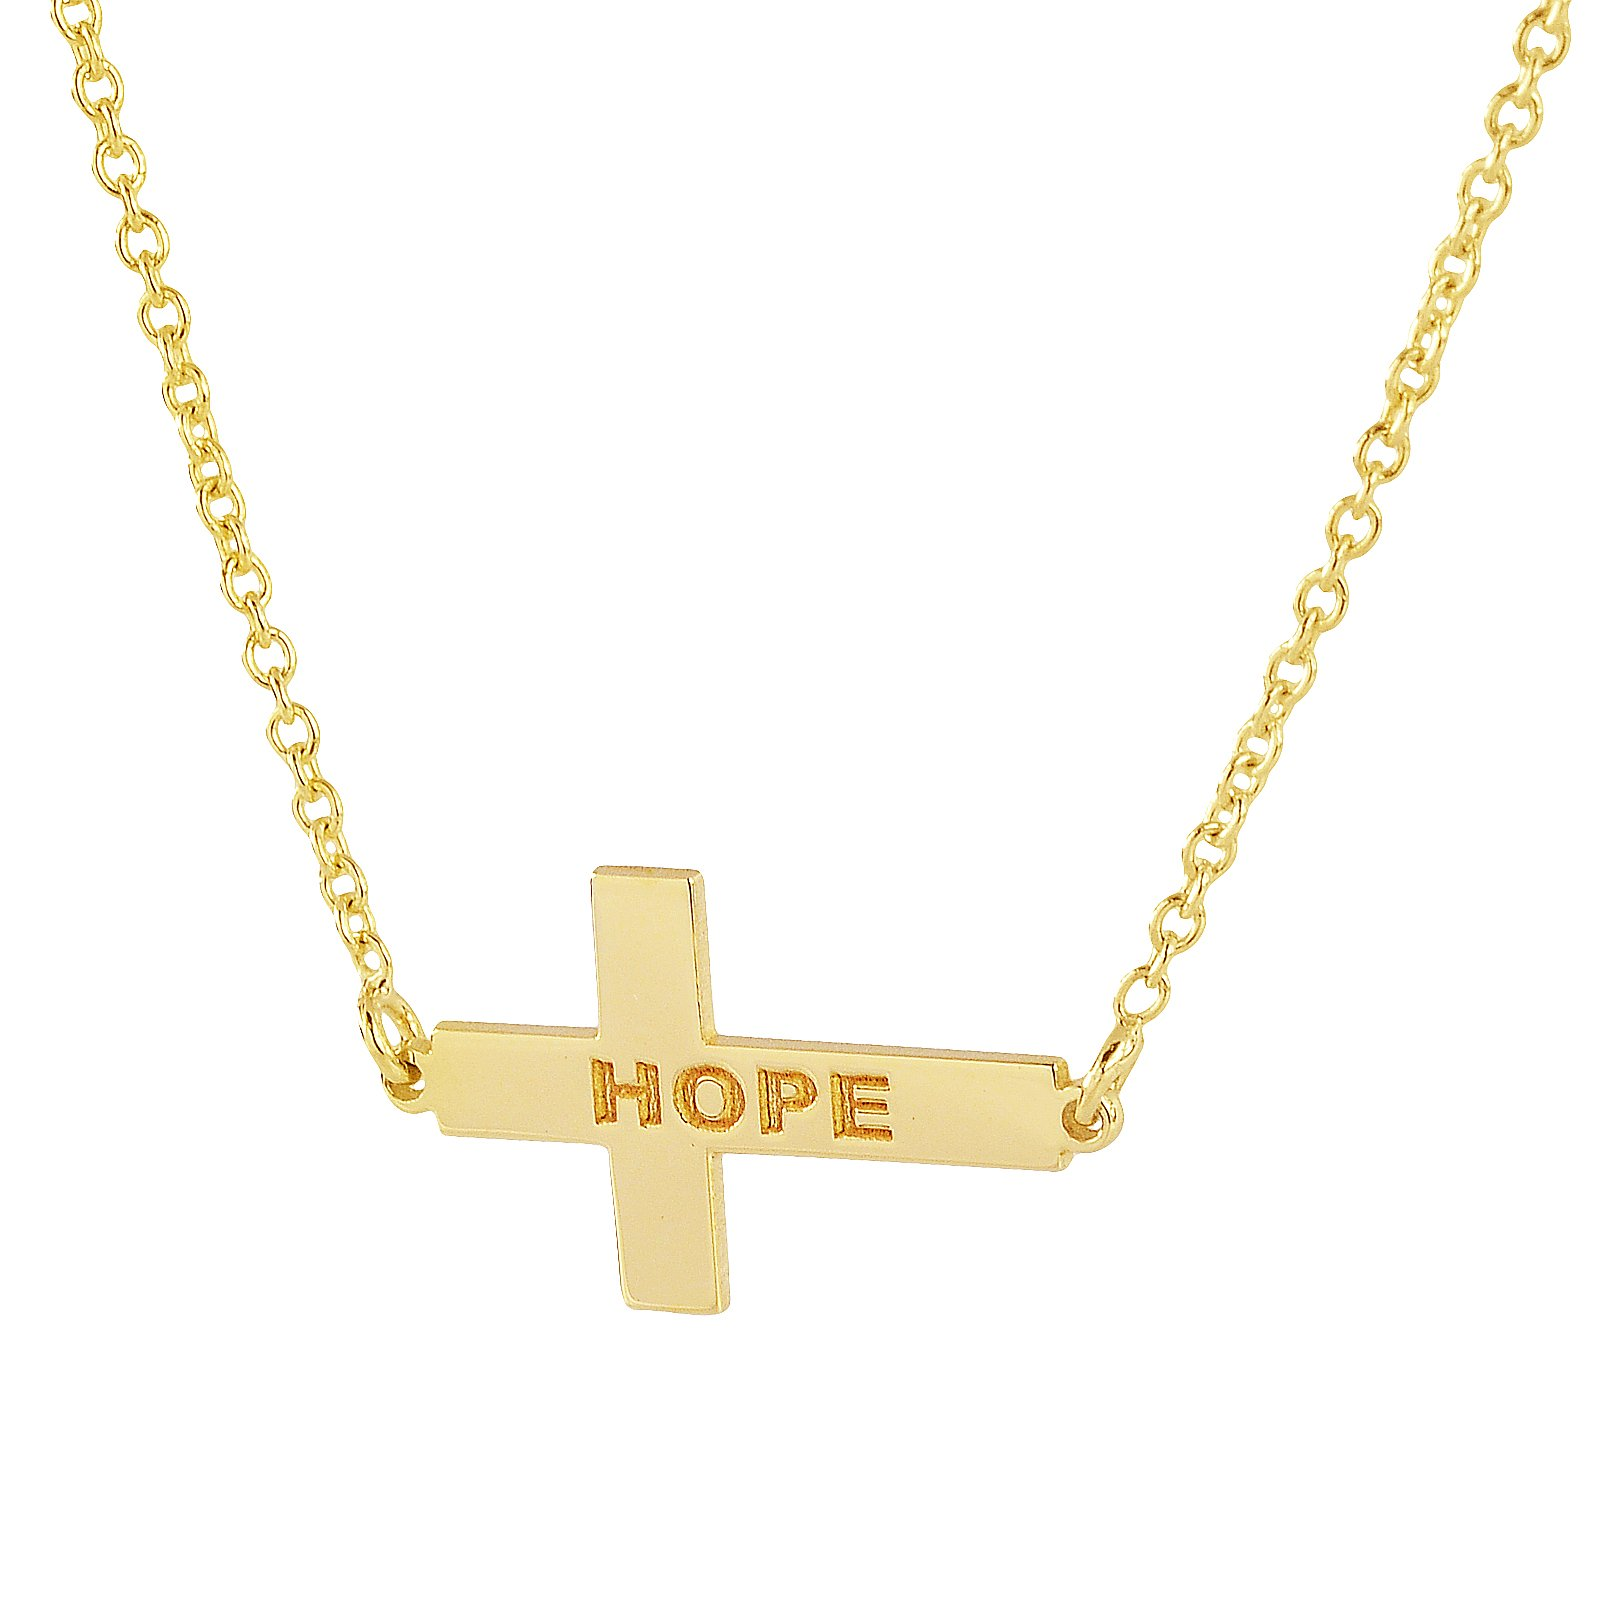 Solid 10K Yellow Gold TSmall iny Sideway Cross Charm Pendant Necklace Personalized Name Engraved (16 Inches, yellow-gold) by Soul Jewelry (Image #1)